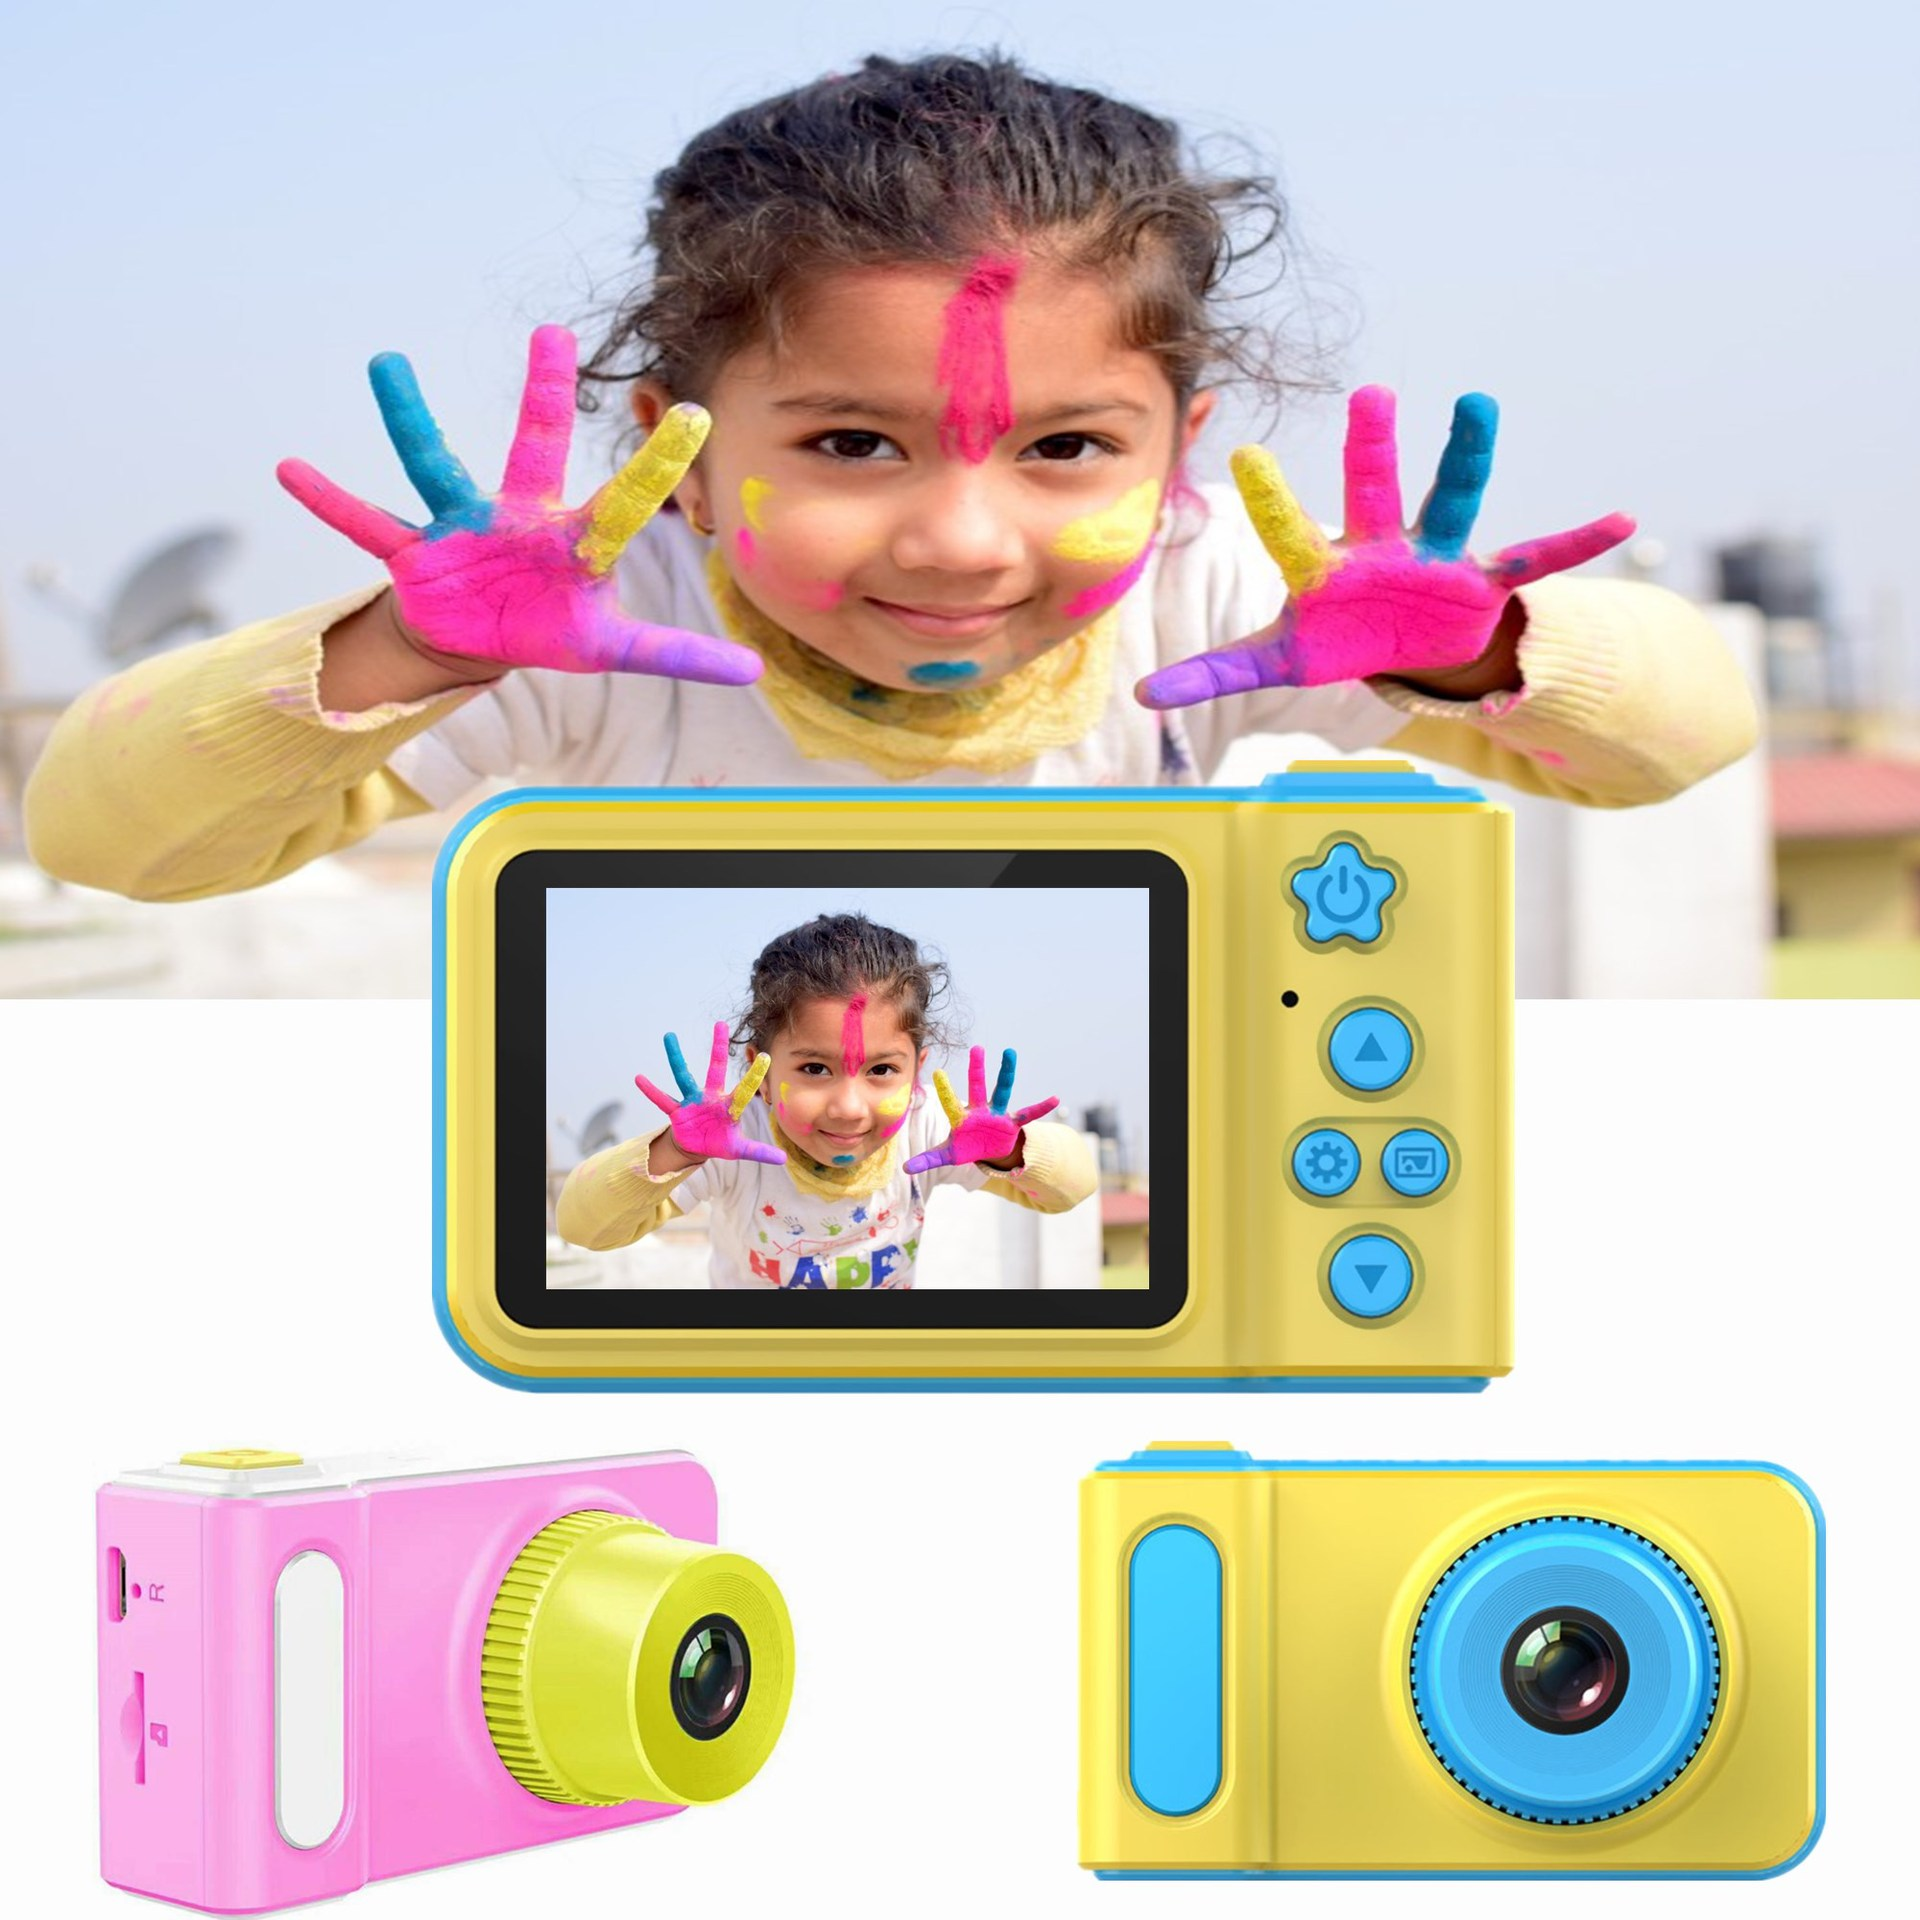 New childrens camera children cartoon digital camera small SLR motion camera DV toys gifts